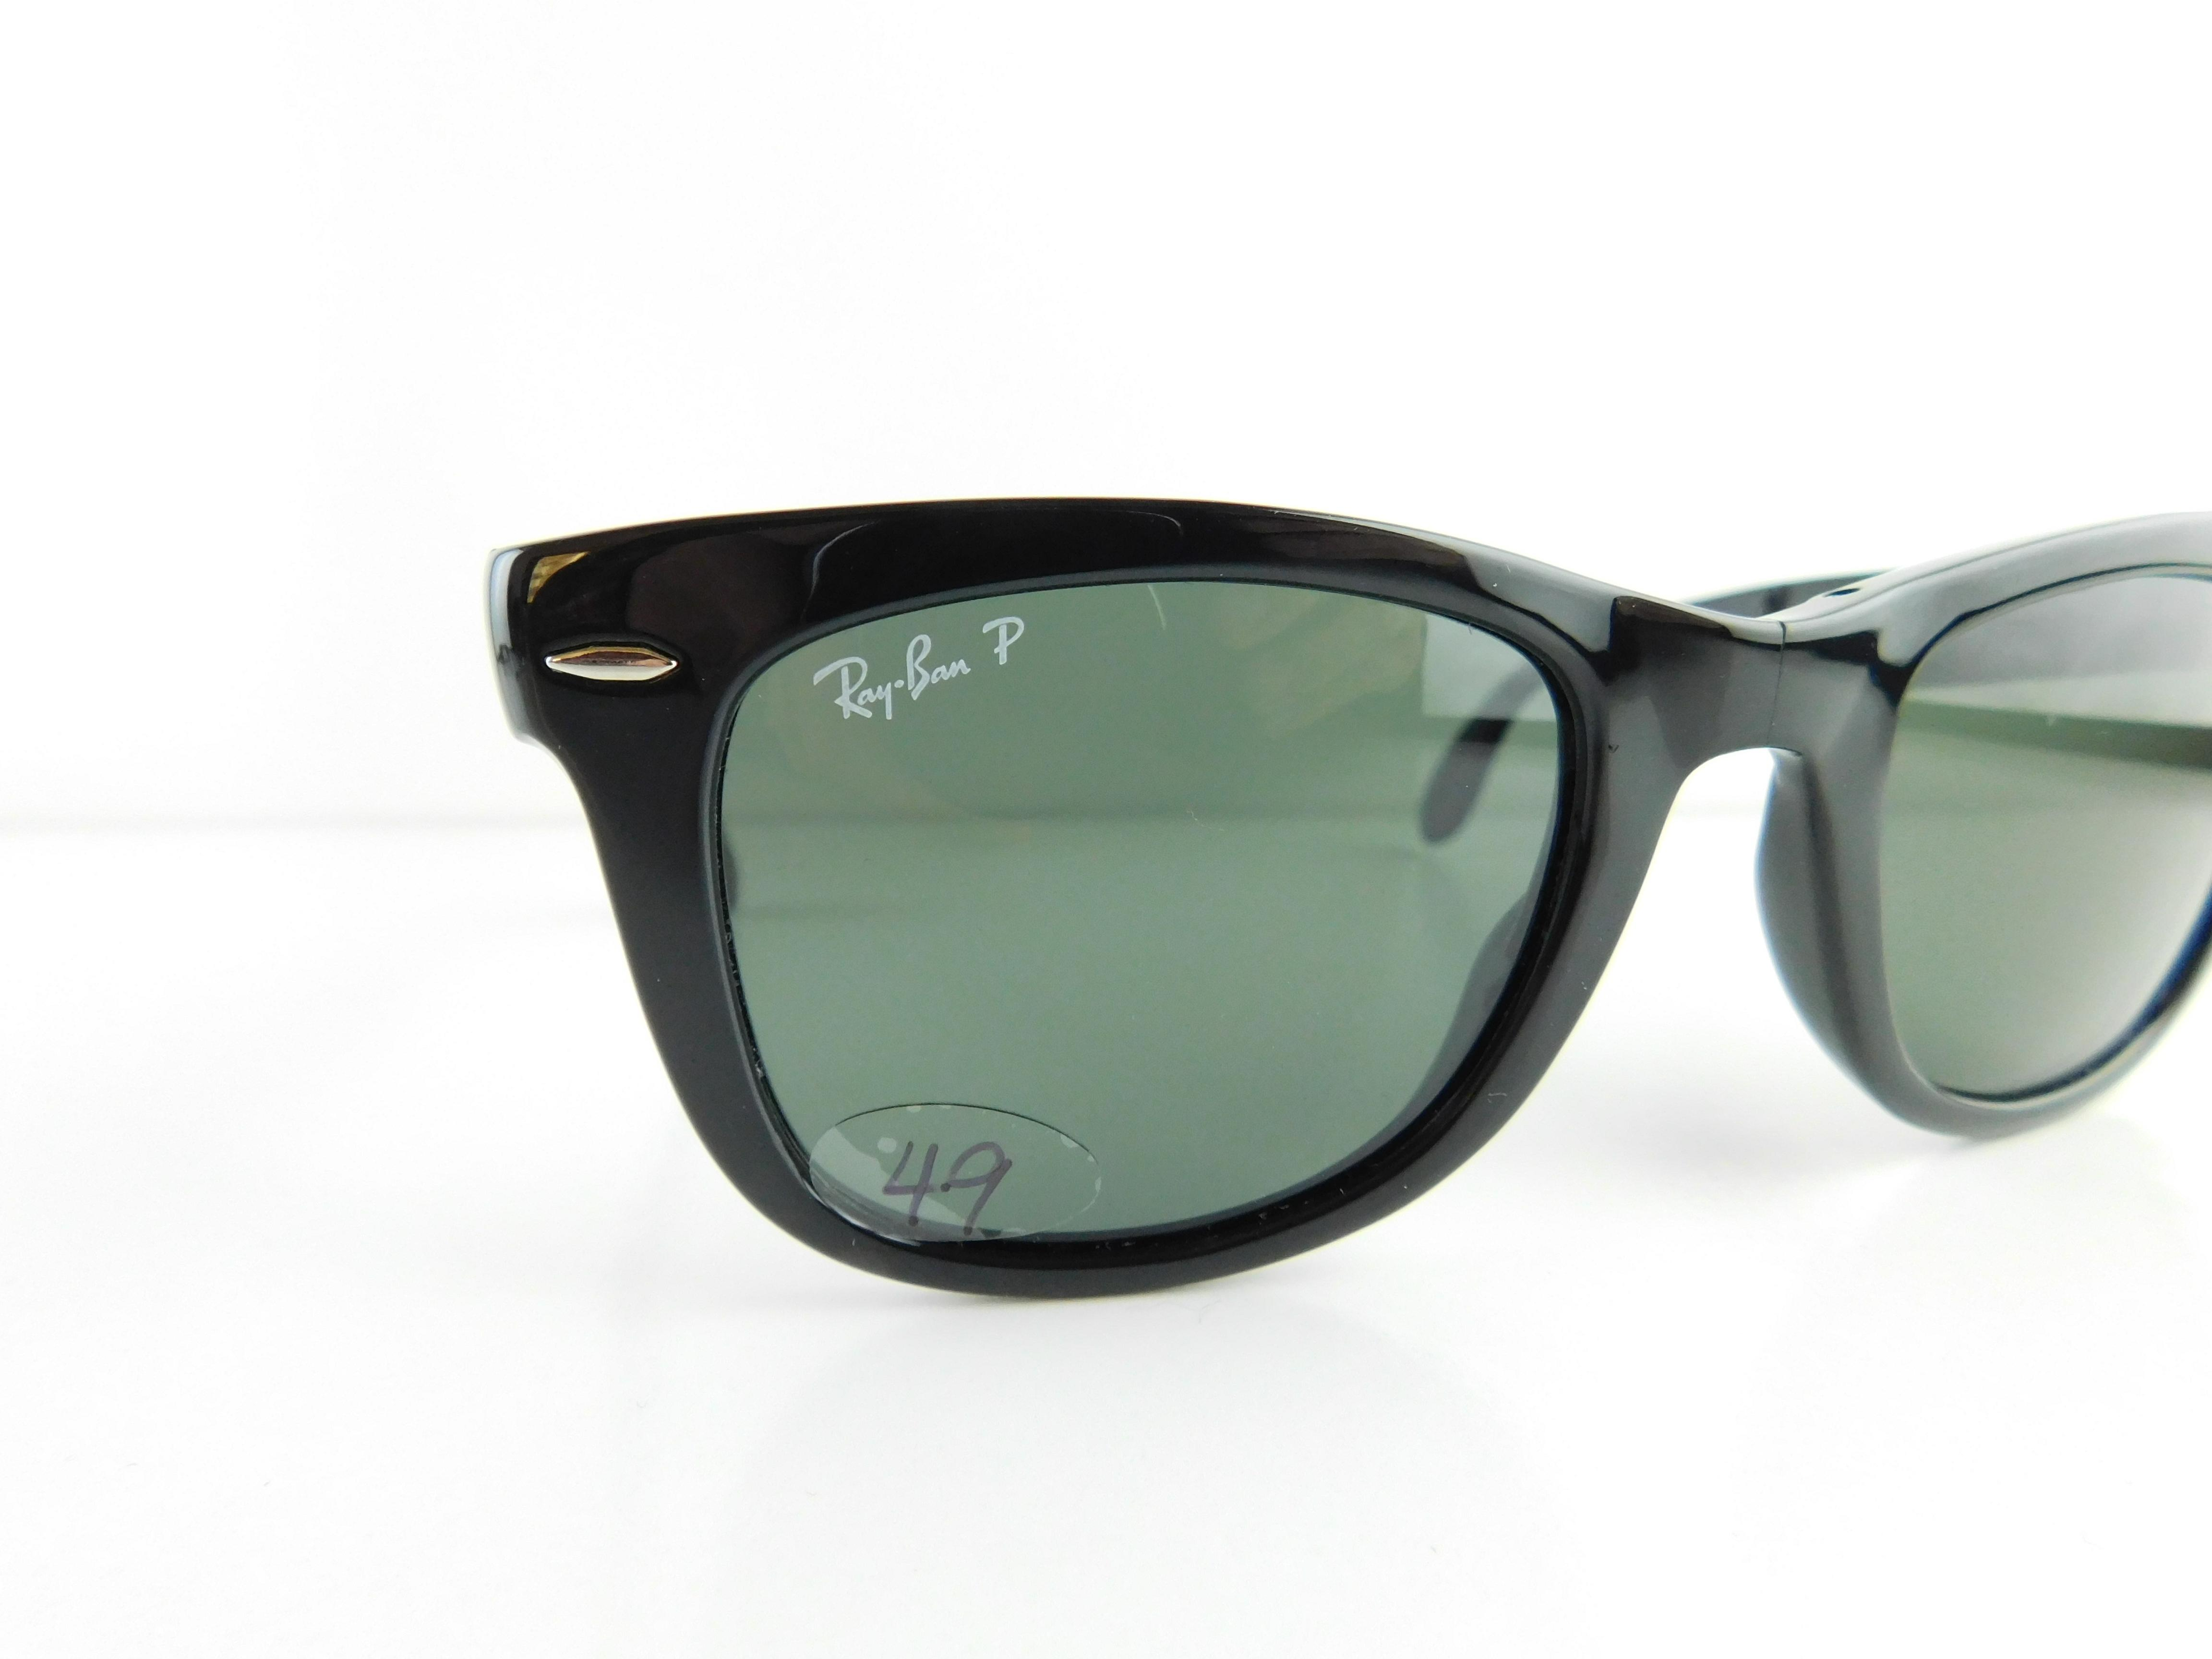 7aaa7c0304 ... closeout ray ban gloss black frame polarized gray green lens gently  used 4105 601 58 folding